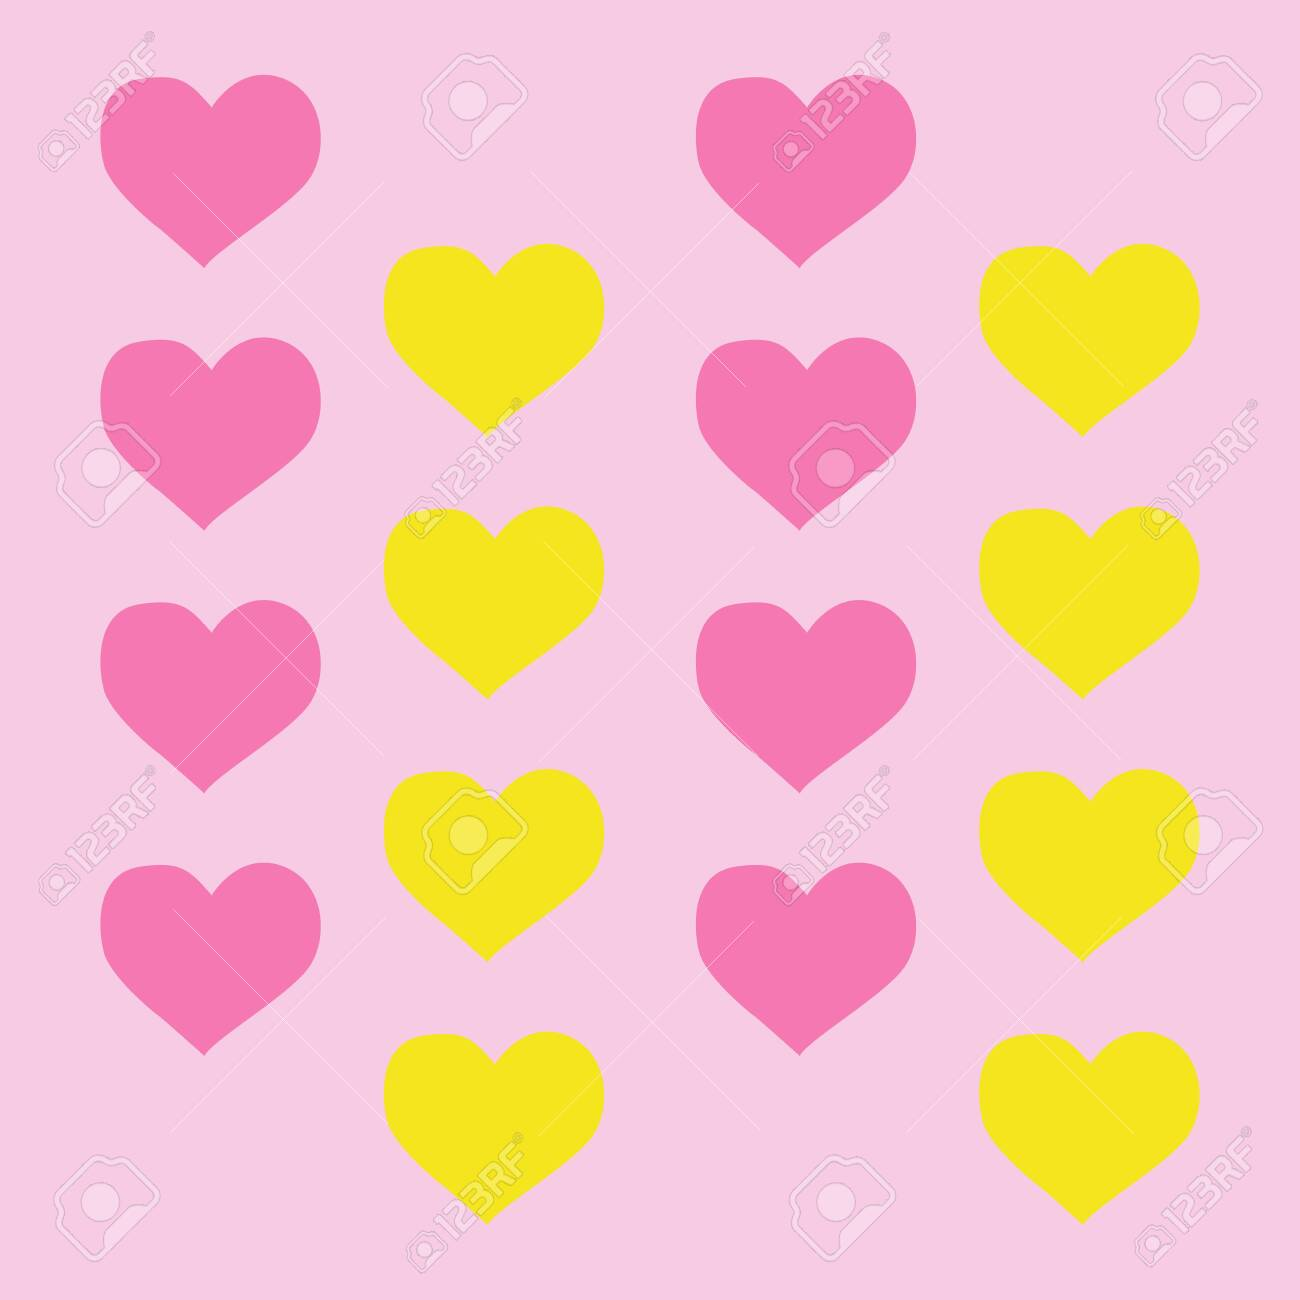 Lovely Heart Wallpaper Heart Shapes In Different Colors For Valentines Day Background